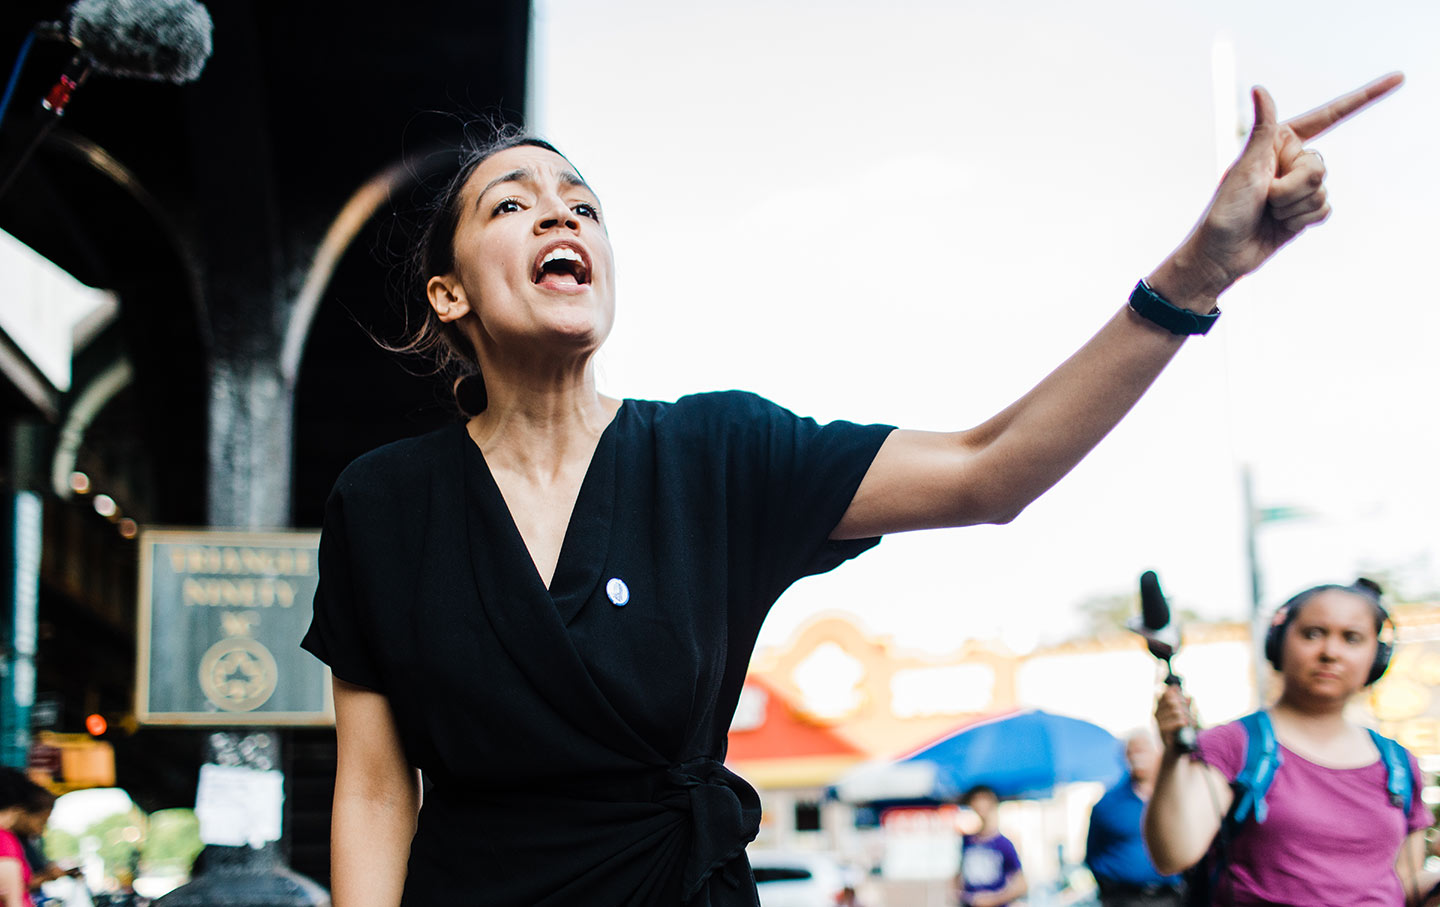 Alexandria Ocasio-Cortez is generation know-nothing's perfect representative (blithe ignorance)